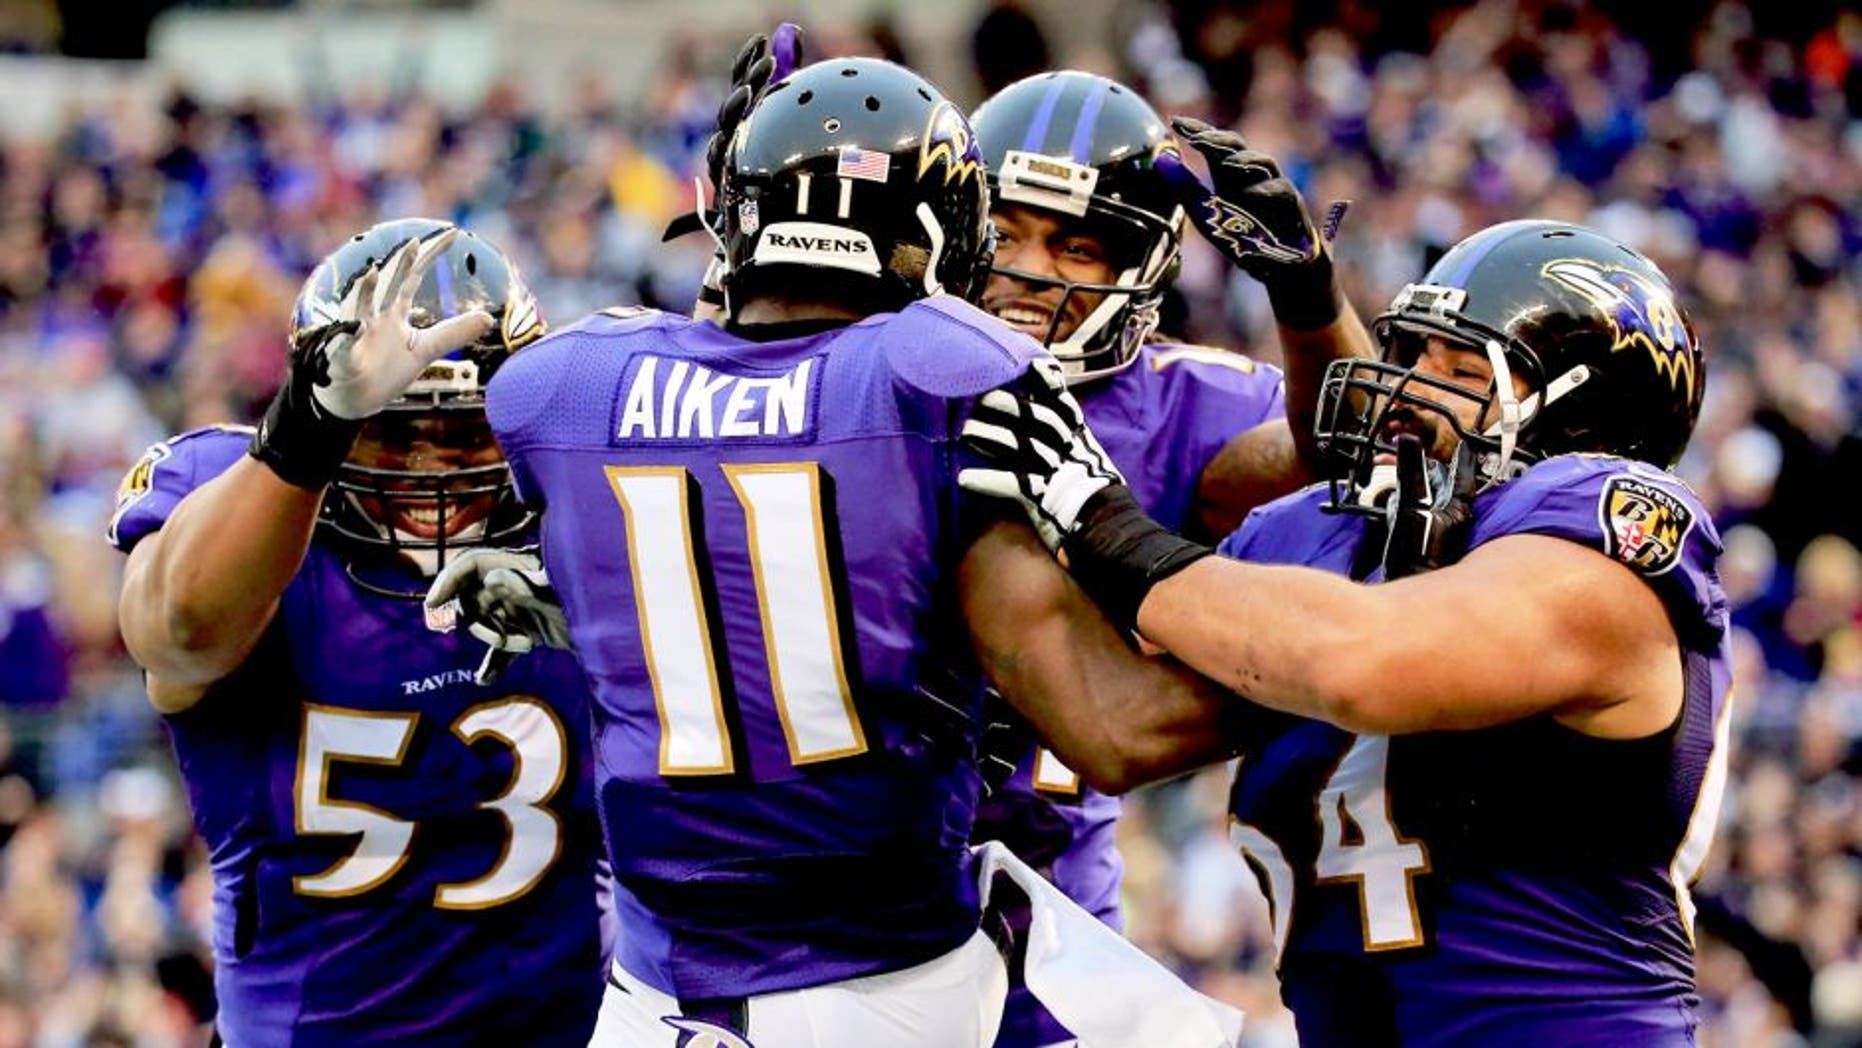 BALTIMORE, MD - DECEMBER 28: Wide receiver Kamar Aiken #11 of the Baltimore Ravens celebrates with teammates after catching a fourth quarter touchdown against the Cleveland Browns at M&T Bank Stadium on December 28, 2014 in Baltimore, Maryland. (Photo by Rob Carr/Getty Images)